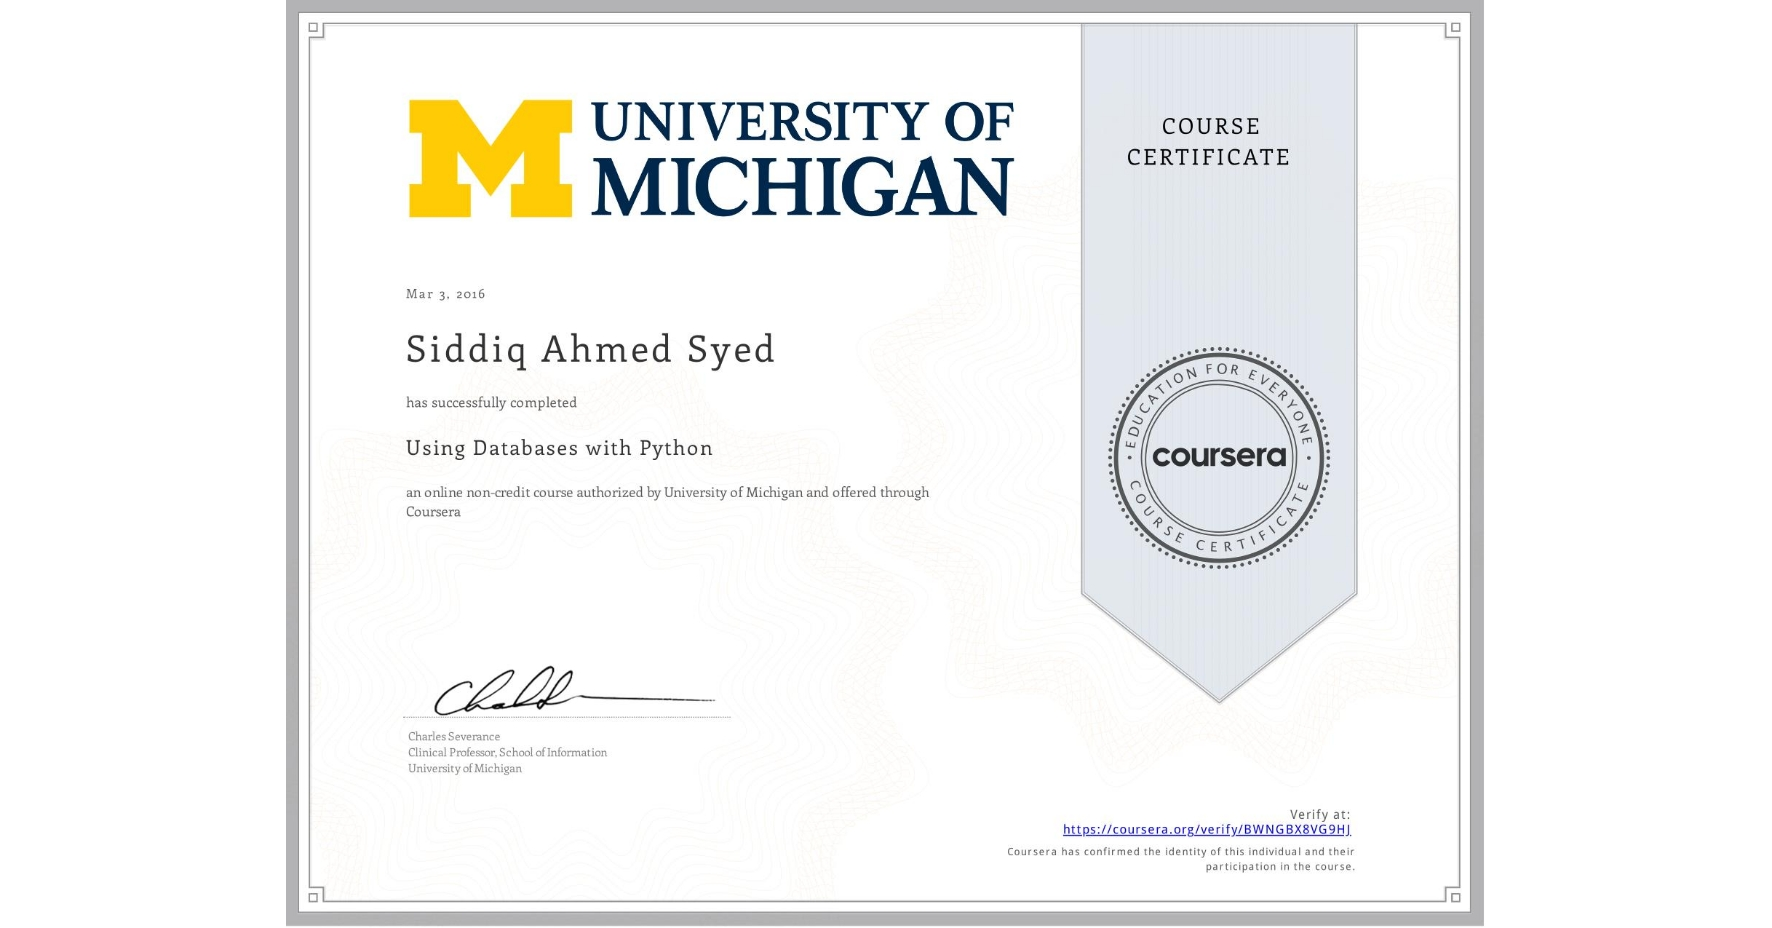 View certificate for Siddiq Ahmed   Syed, Using Databases with Python, an online non-credit course authorized by University of Michigan and offered through Coursera